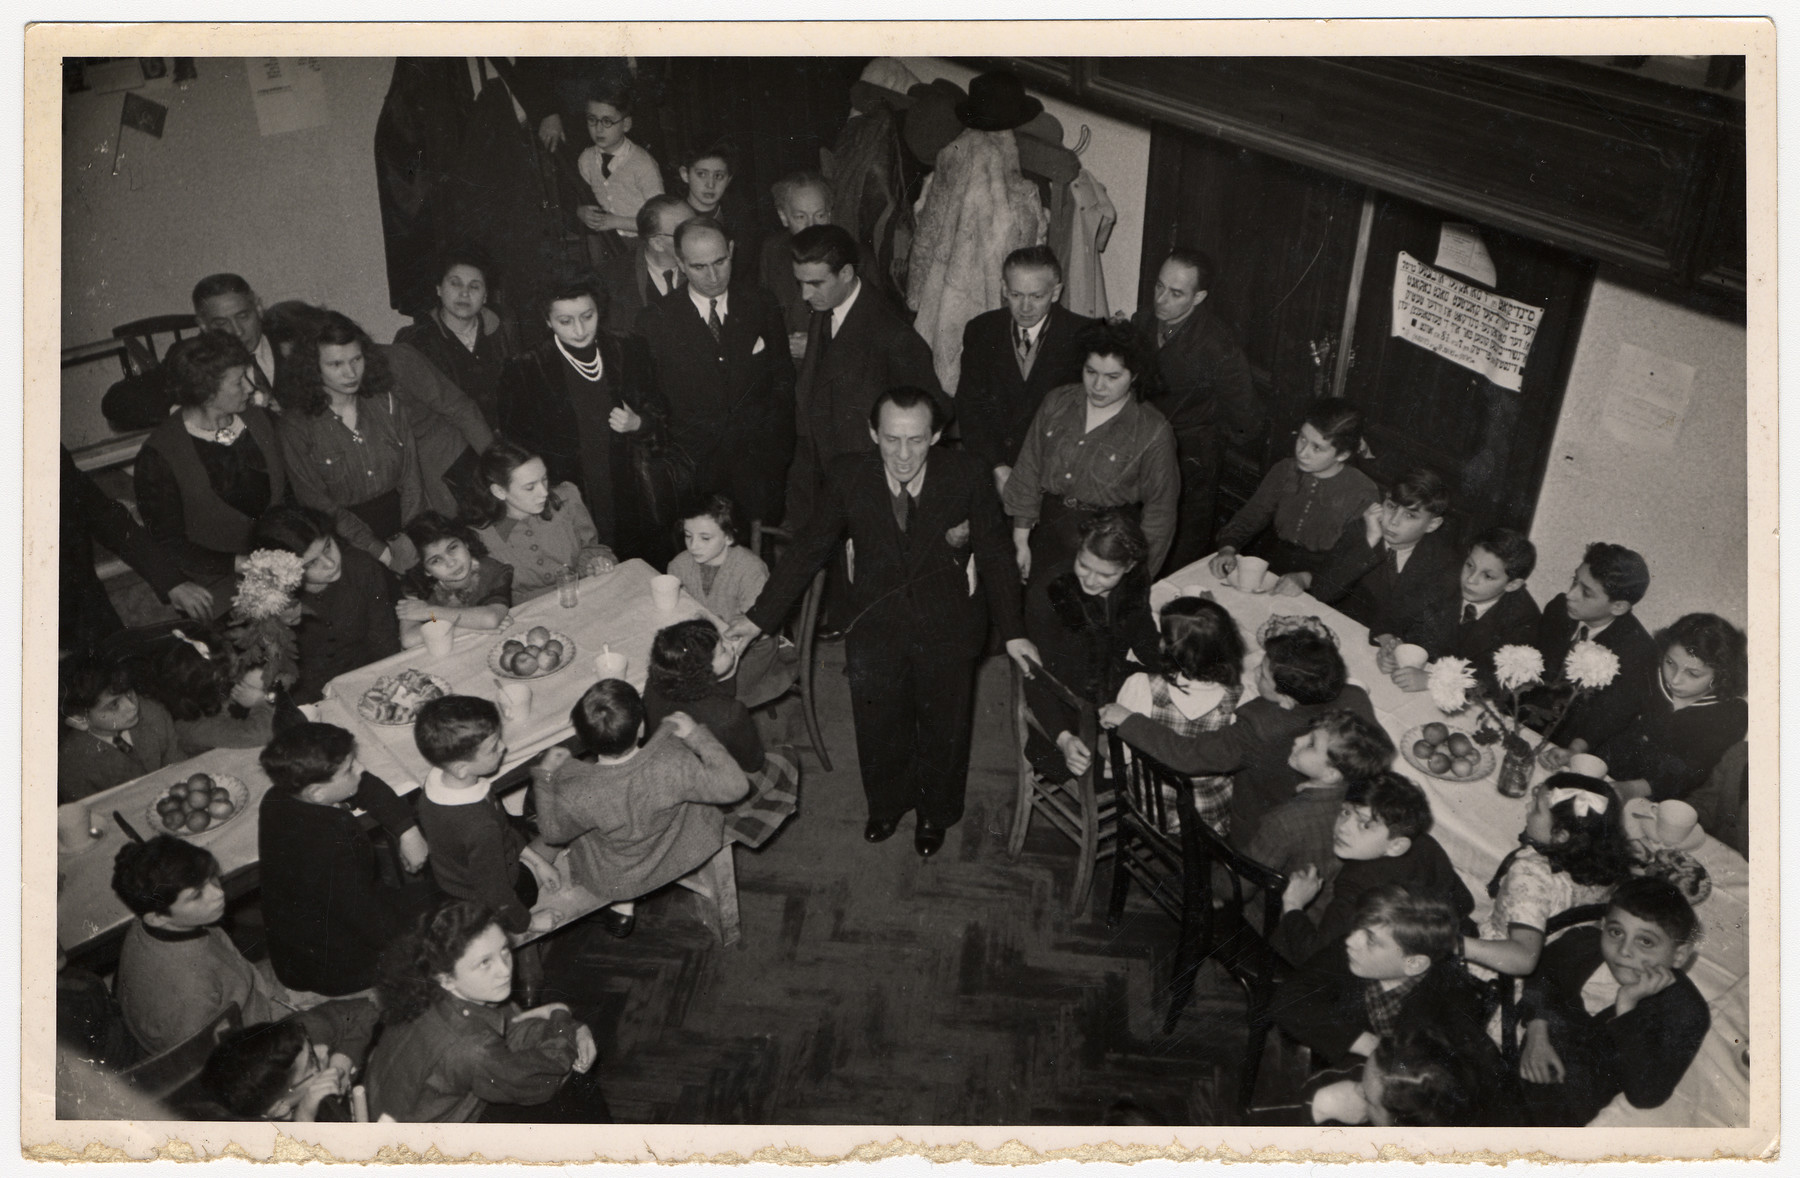 Children in a postwar children's home gather around long tables set with fruit and decorated with flowers.  Hebrew signs hang on the walls.  Among those pictured is Fela Perleman (standing center wearing pearls).